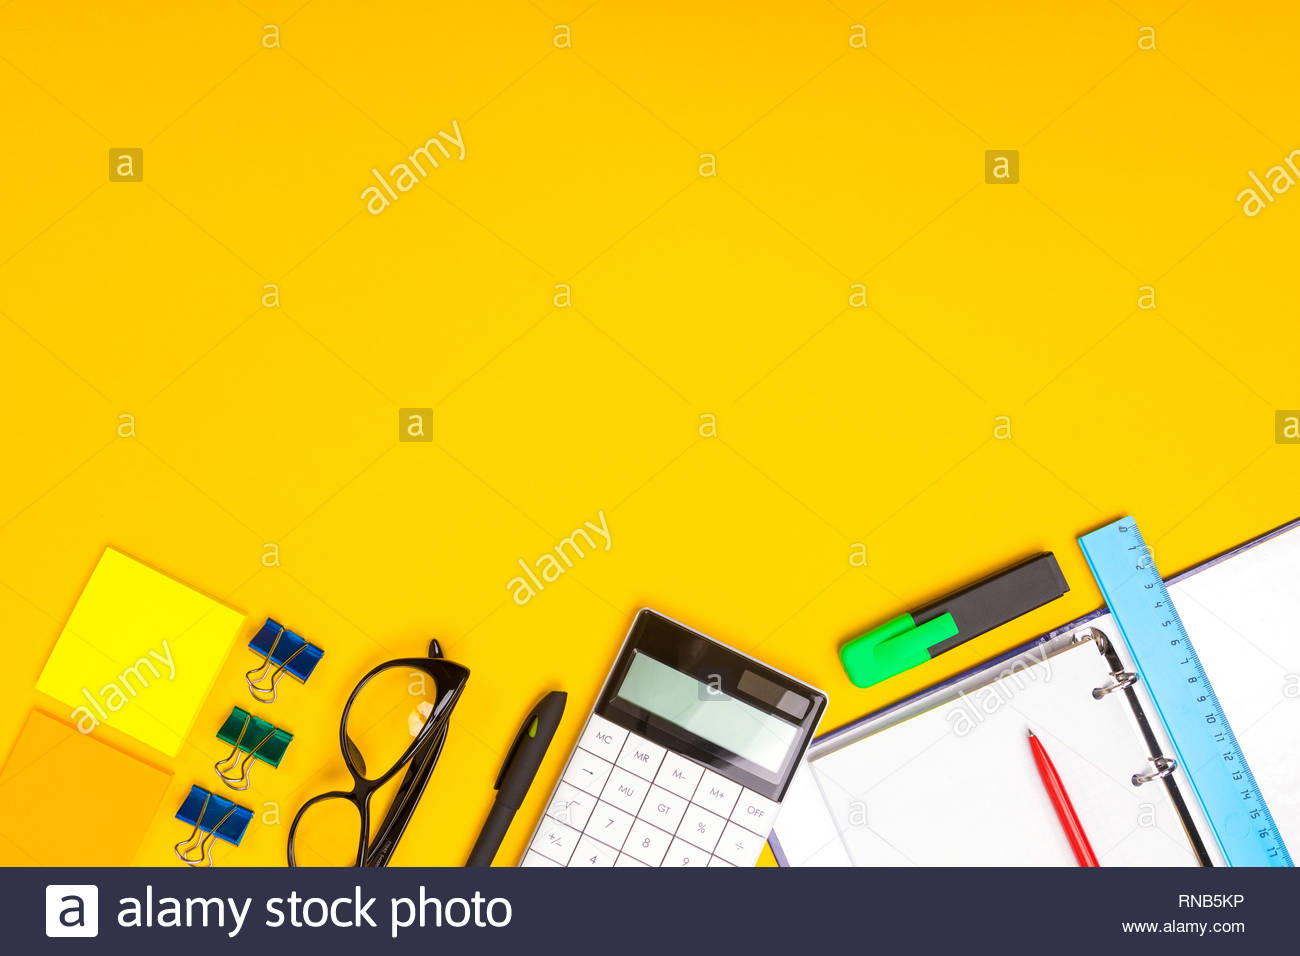 School office supplies on yellow background ready for your design 1300x956